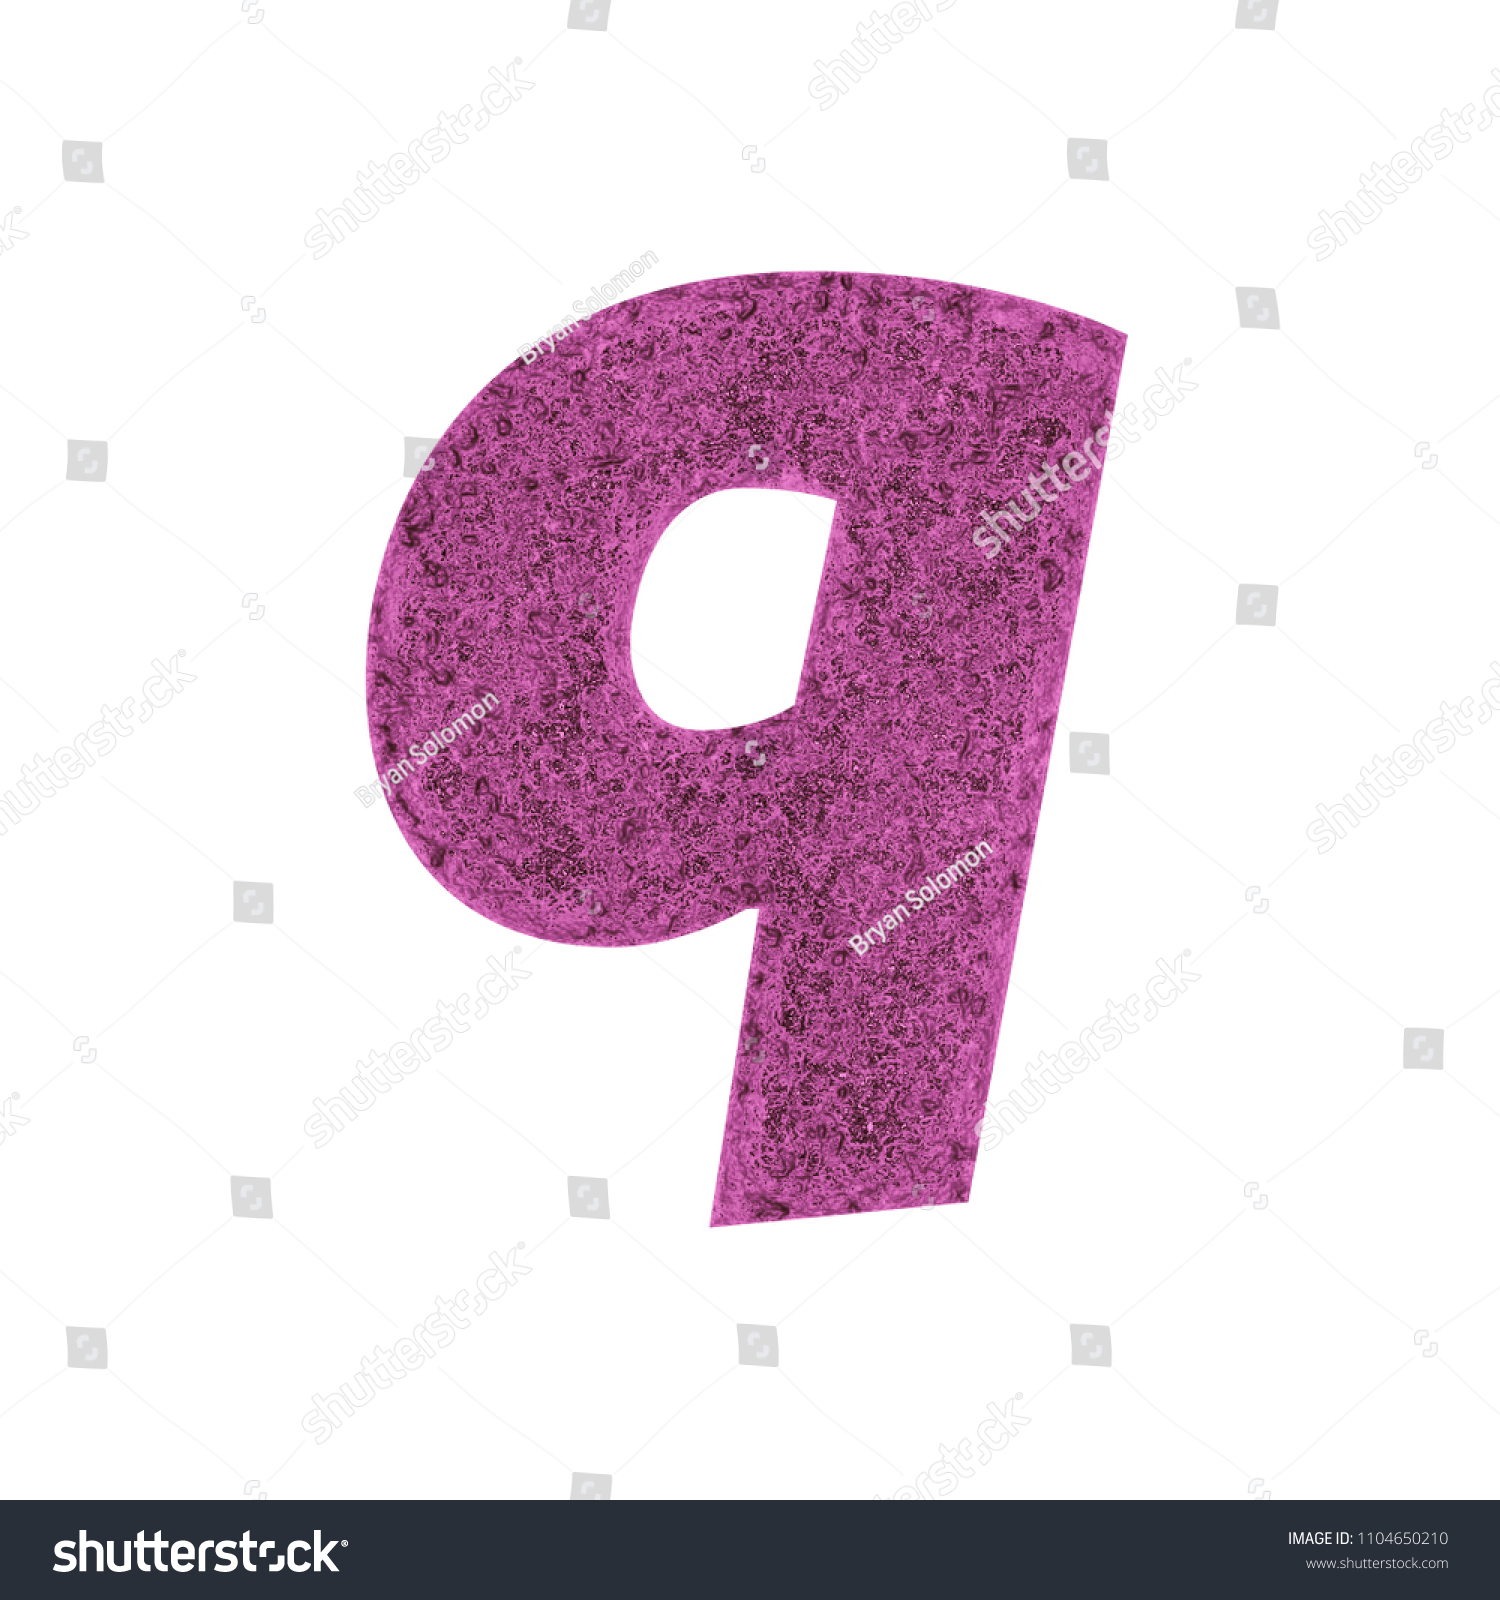 Distressed Pink Metal Letter Q Lowercase Stock Illustration ...